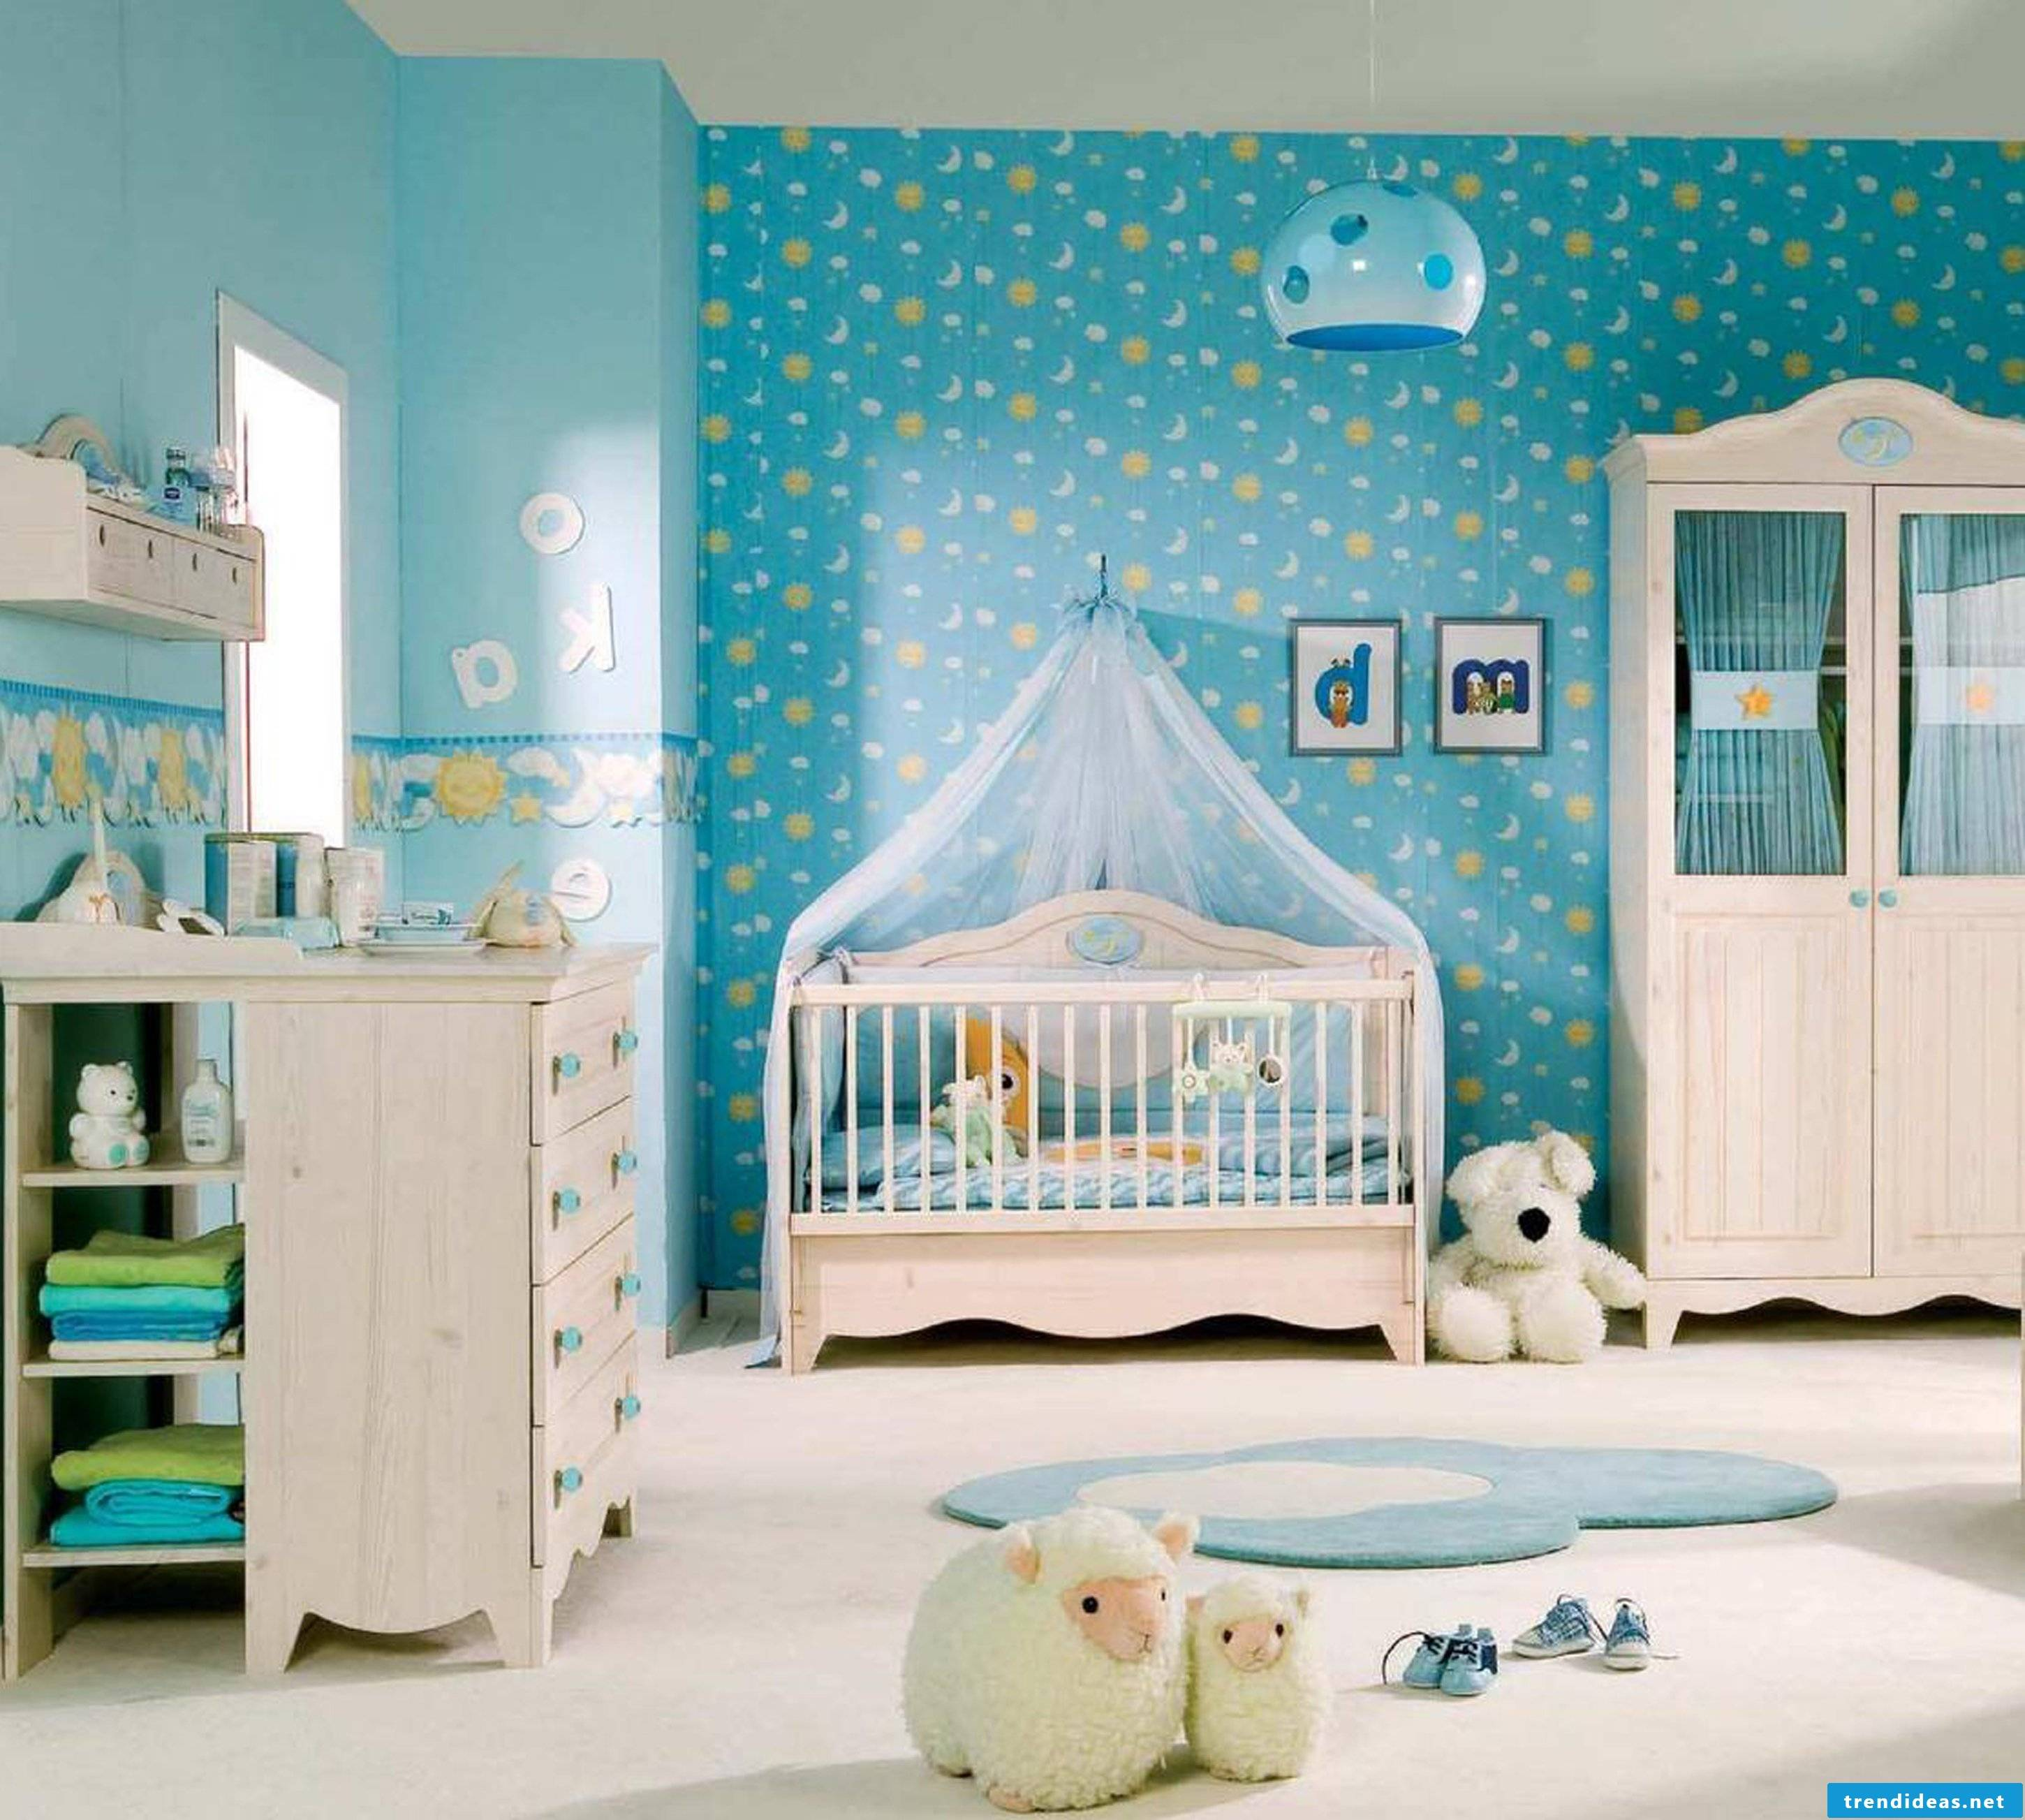 Chic nursery for the baby boy